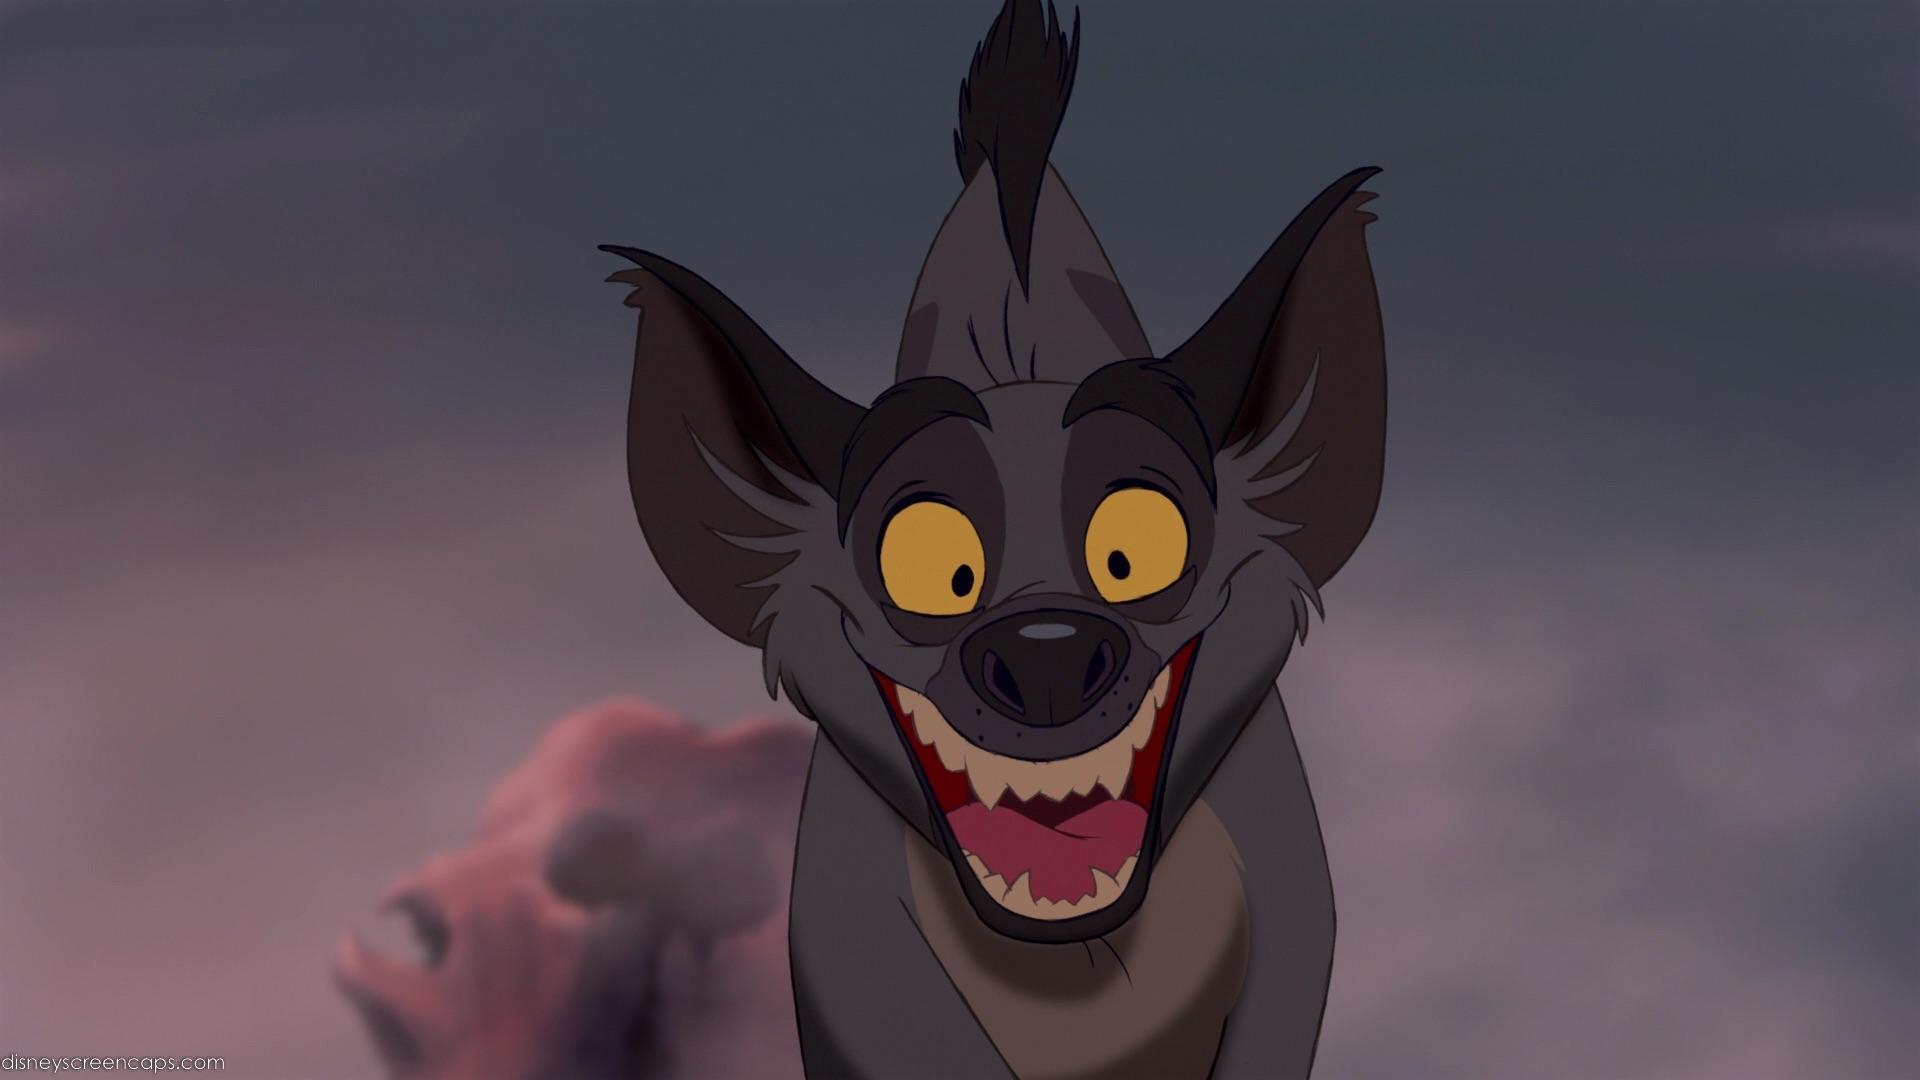 Banzai (The Lion King)